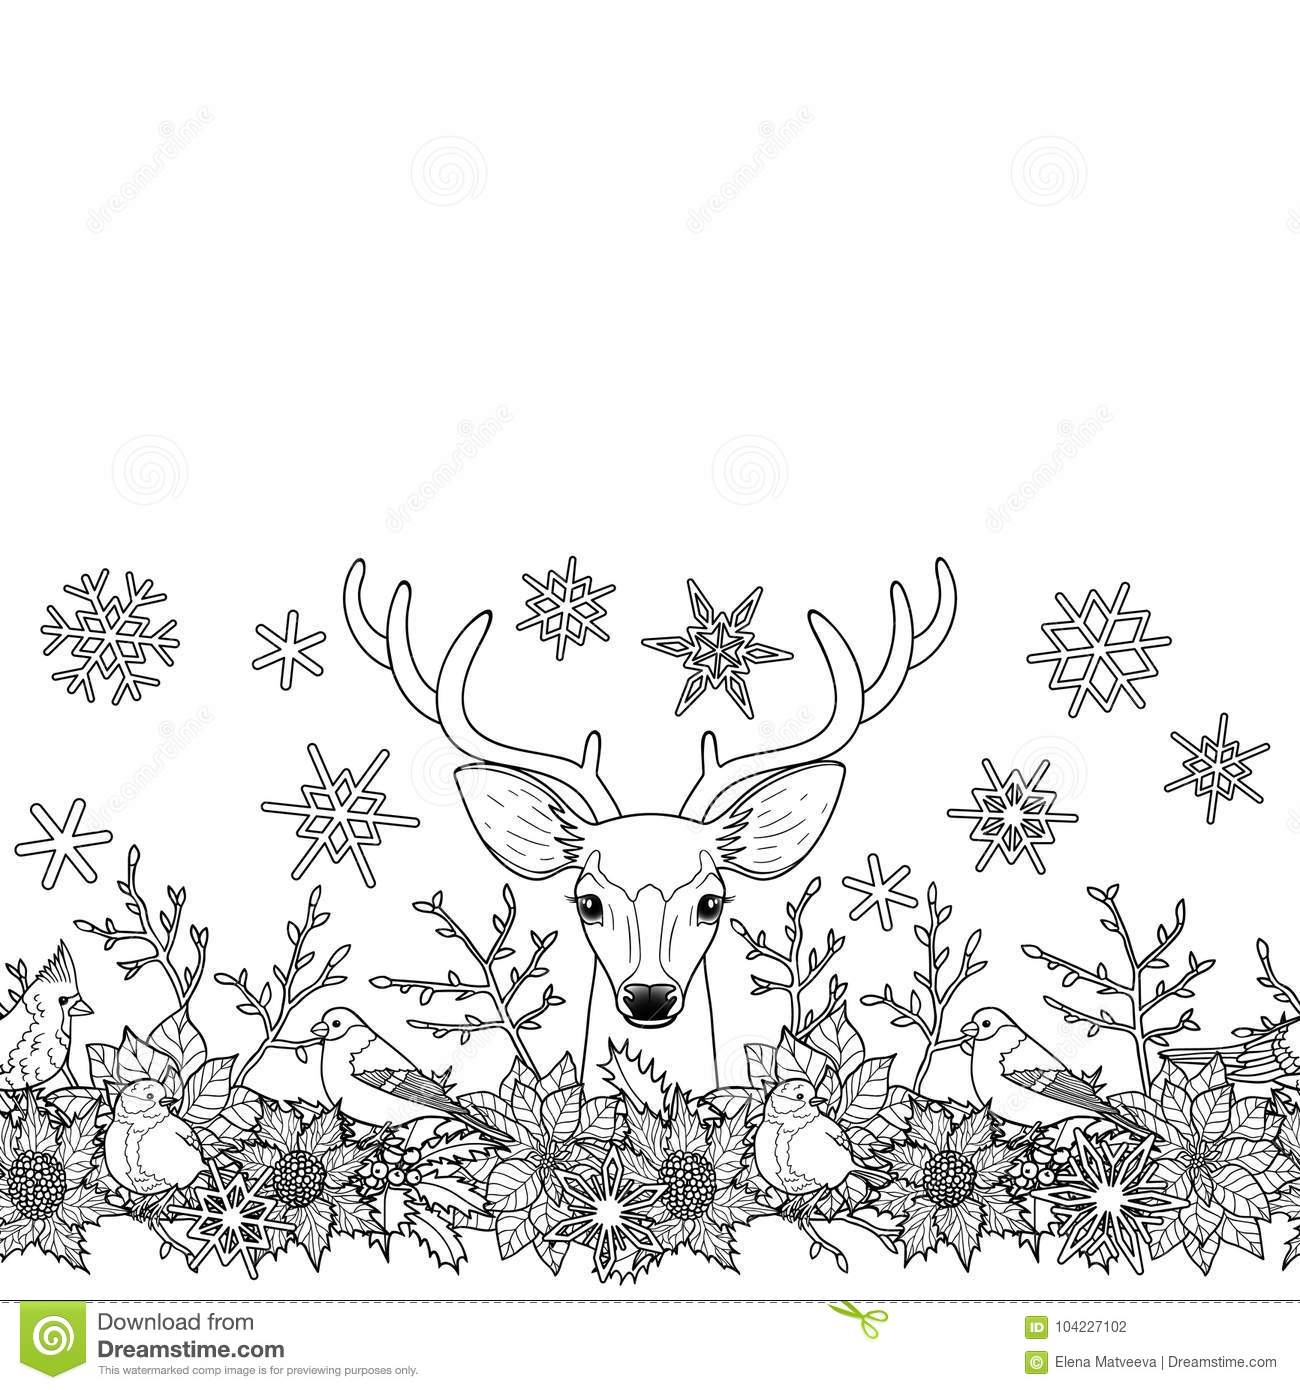 deer and birds seamless horizon border winter square new year black and white wallpaper for greeting cards mock ups coloring page and textile prints with